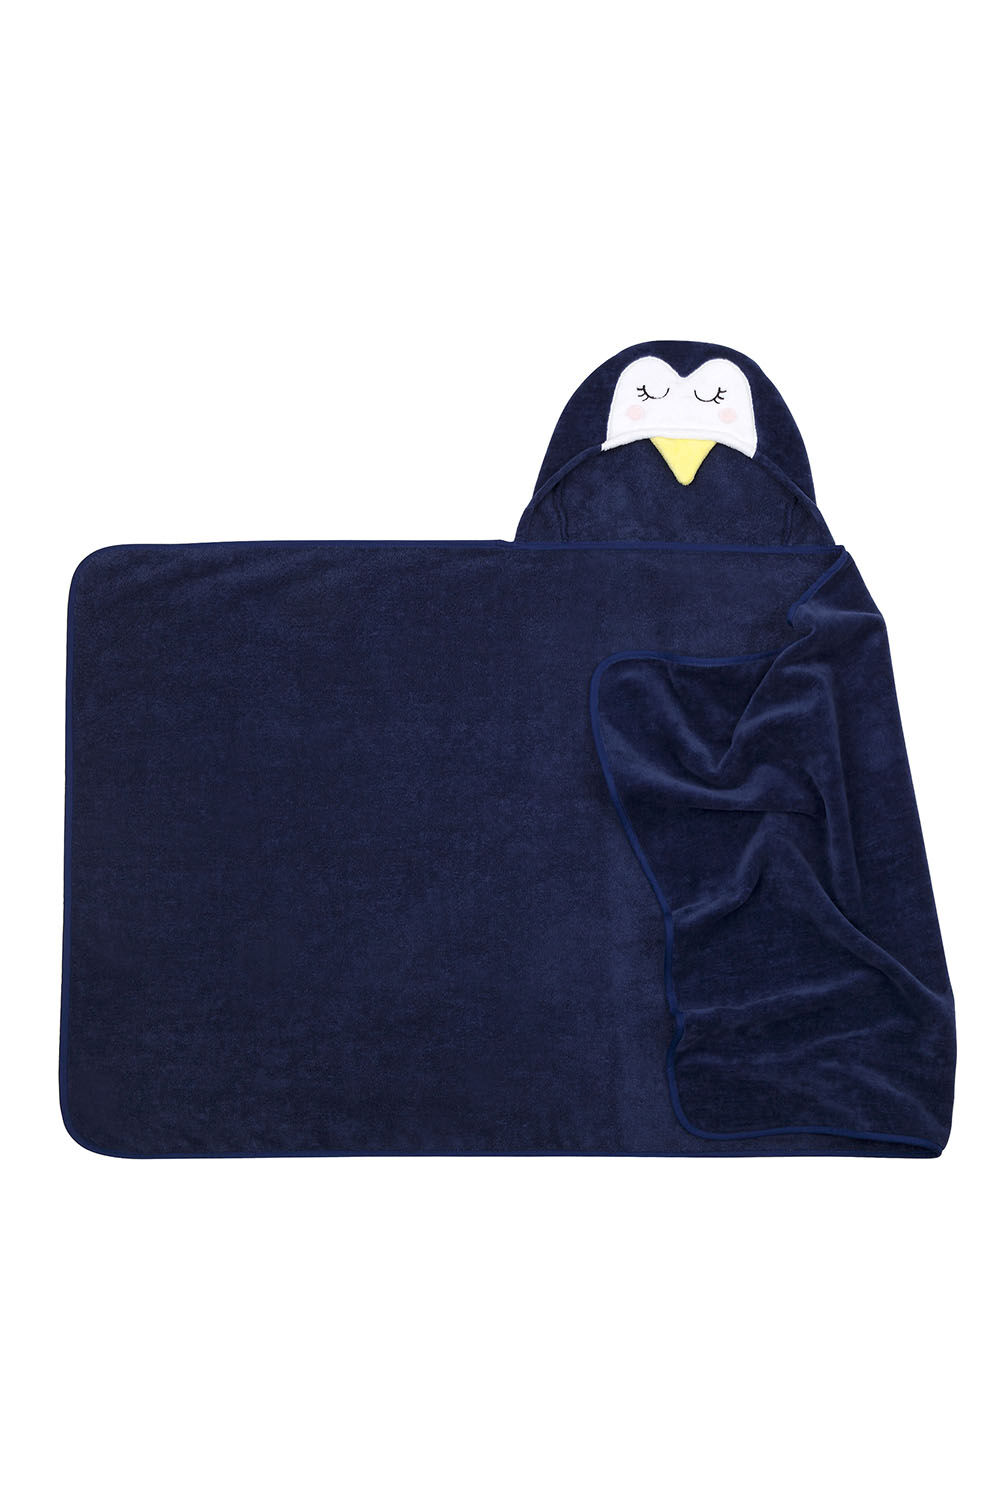 Penguin Kids Hooded Bath Towel in colour BLACK IRIS